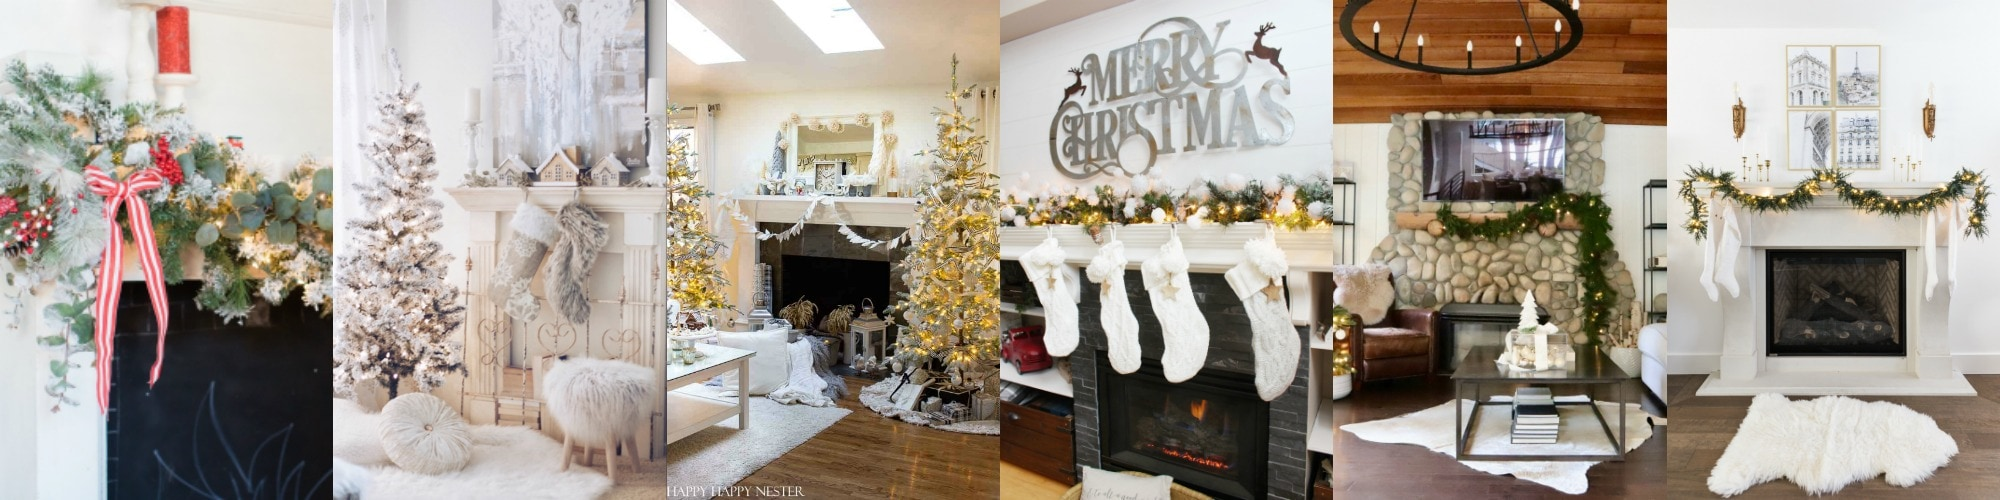 inspiring holiday mantels